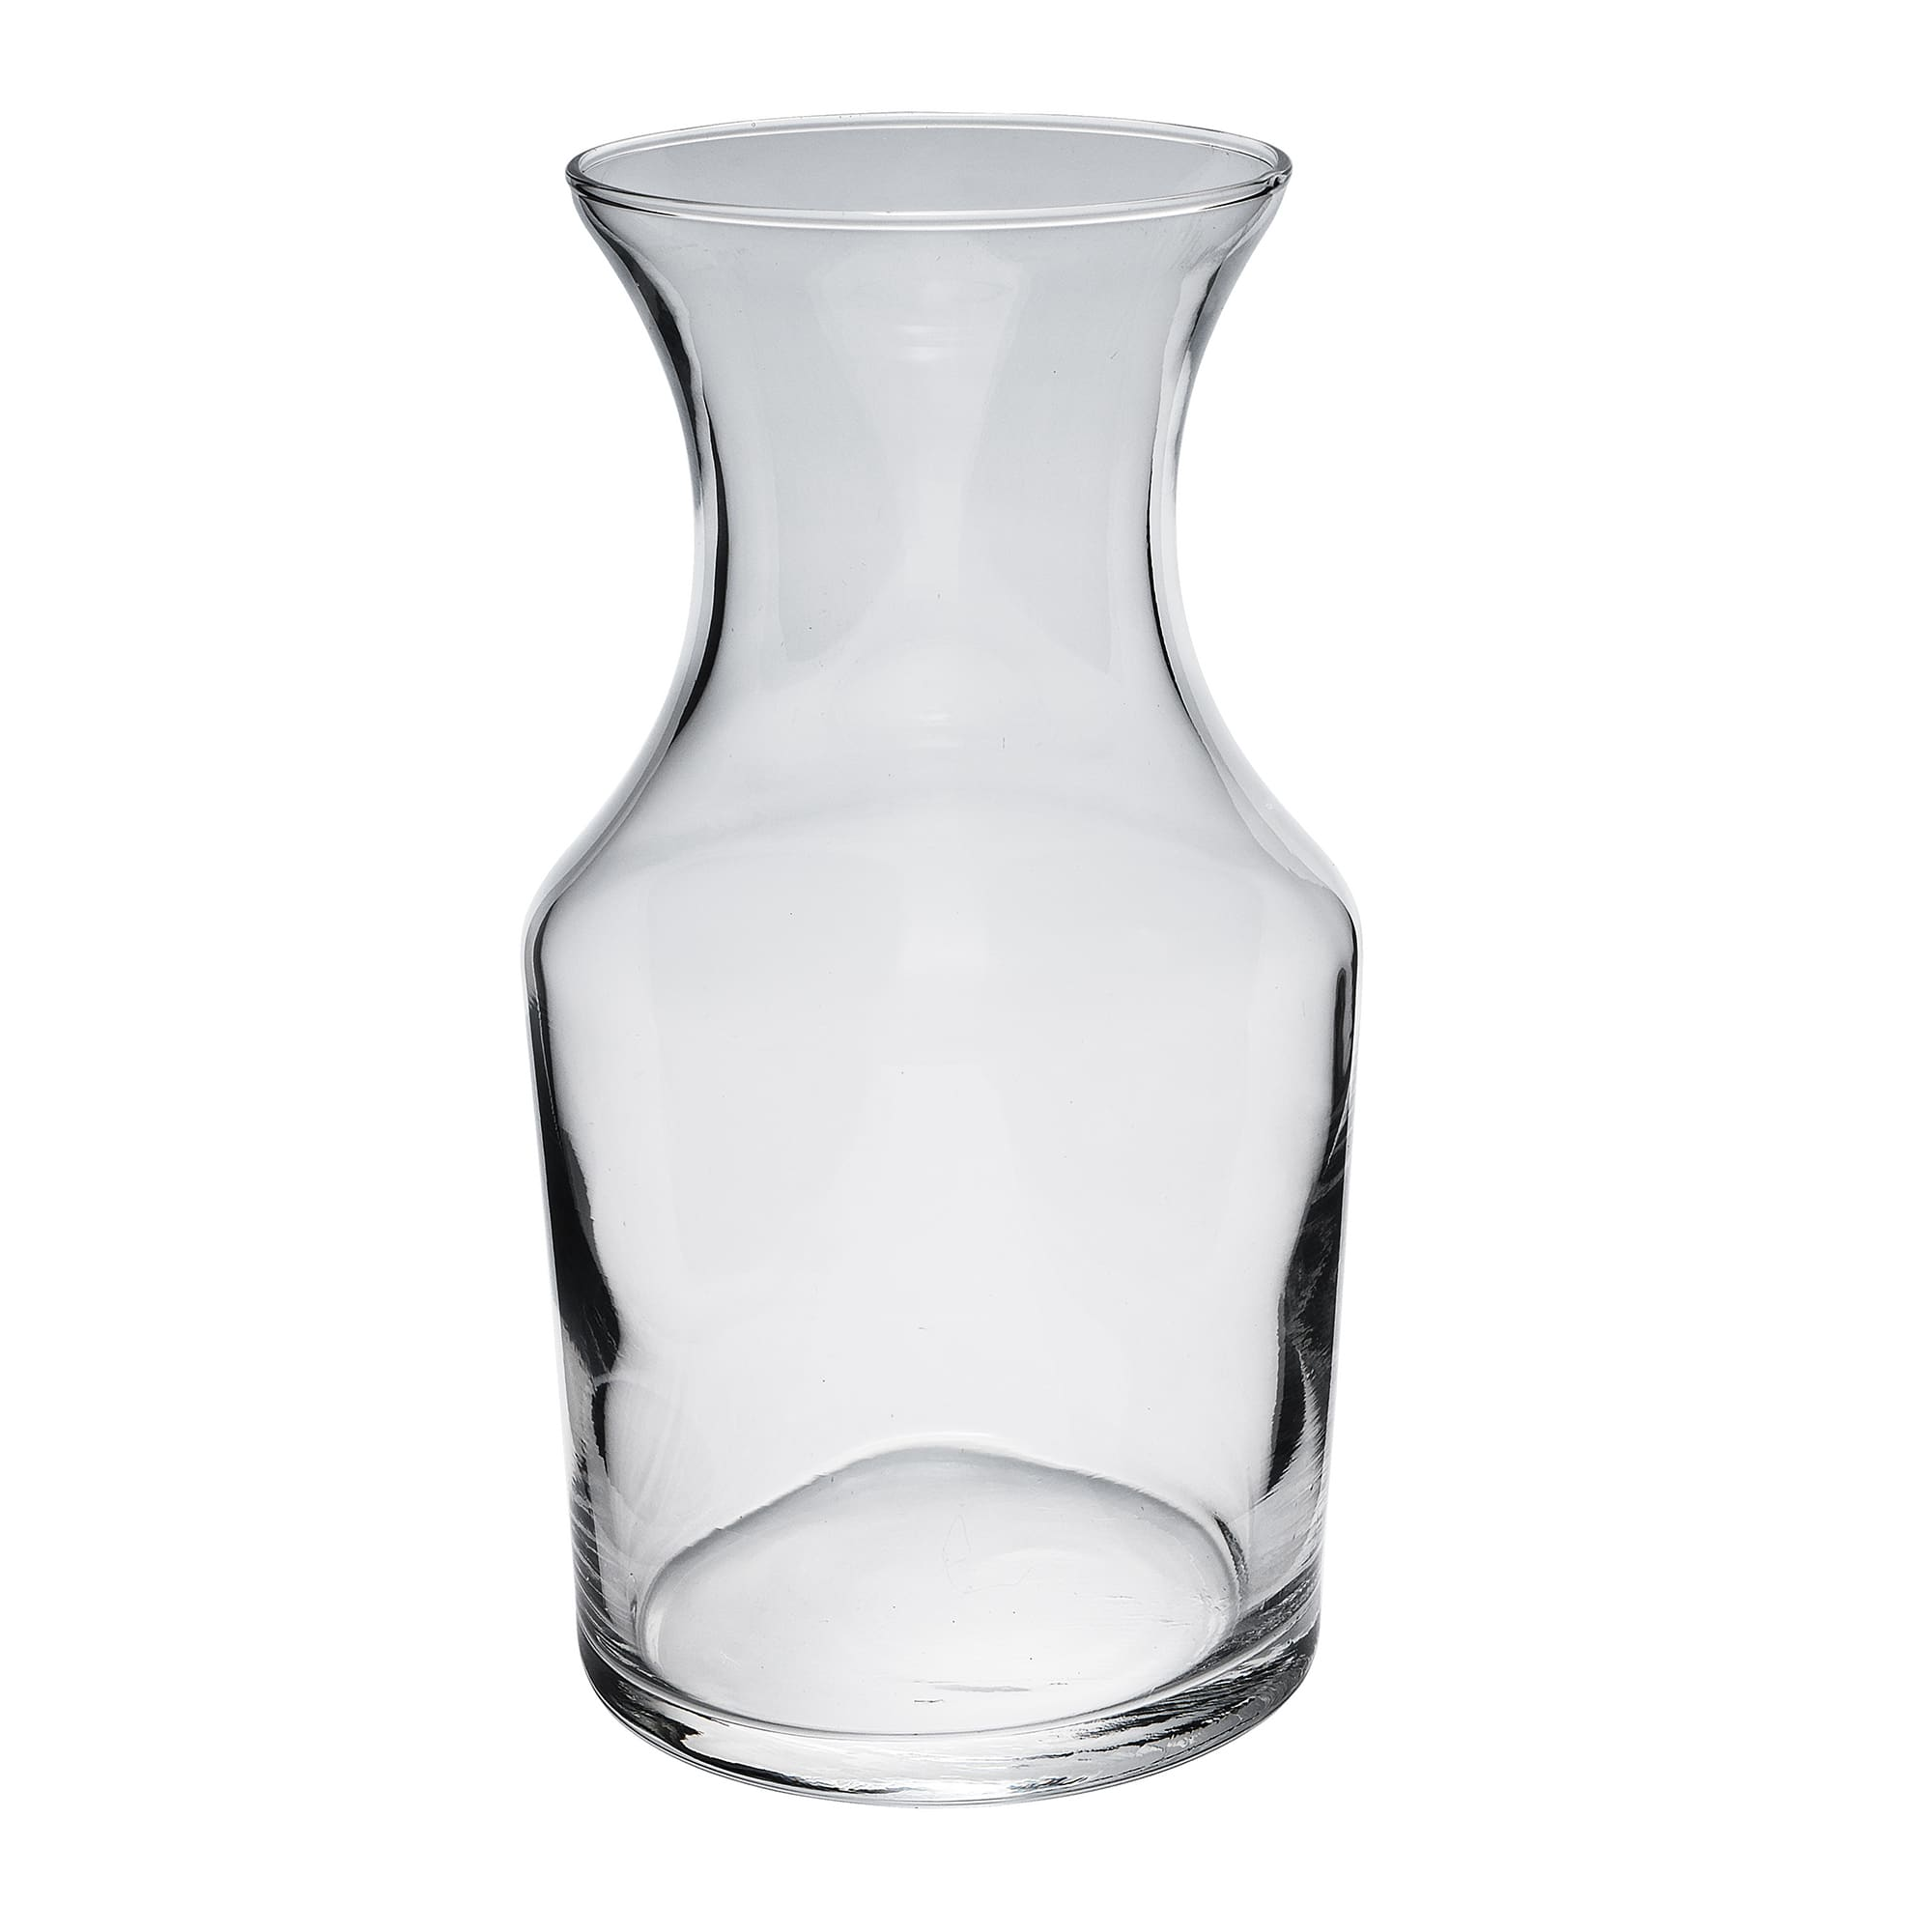 Libbey 719 85 Oz Glass Cocktail Decanter Bud Vase